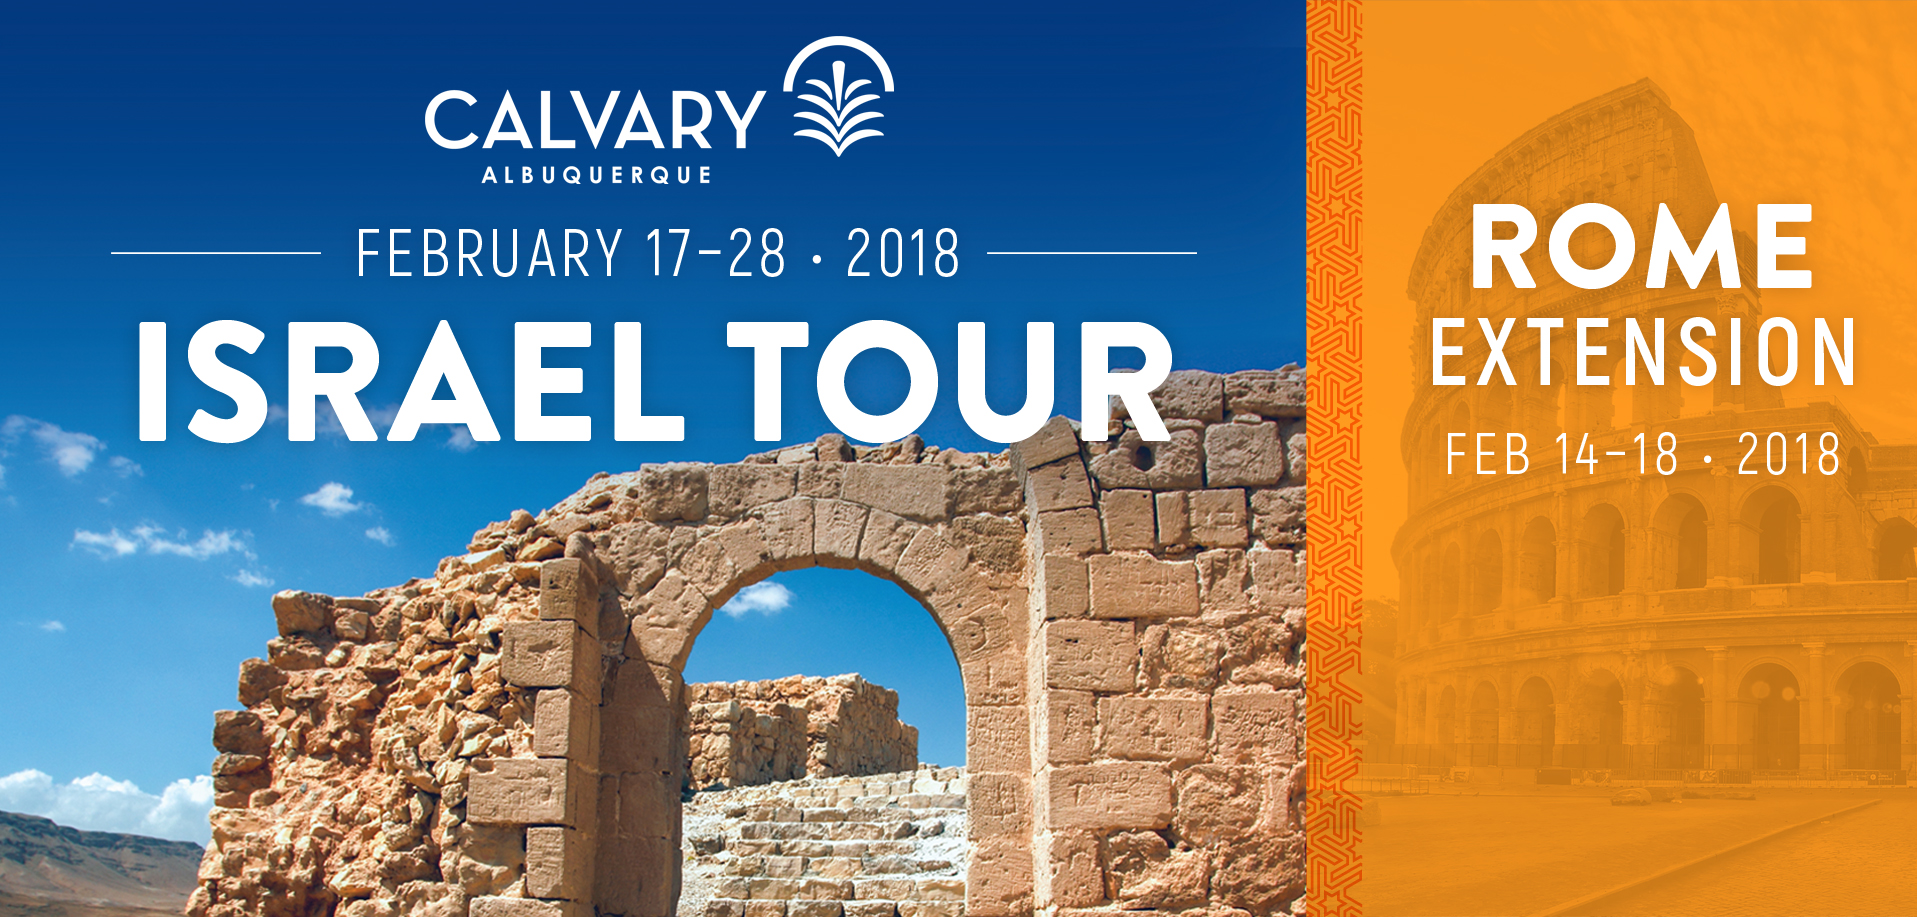 Take a Christian TourWX with Calvary Albuquerque - Christian Tour to Israel - February 17 - 28, 2018